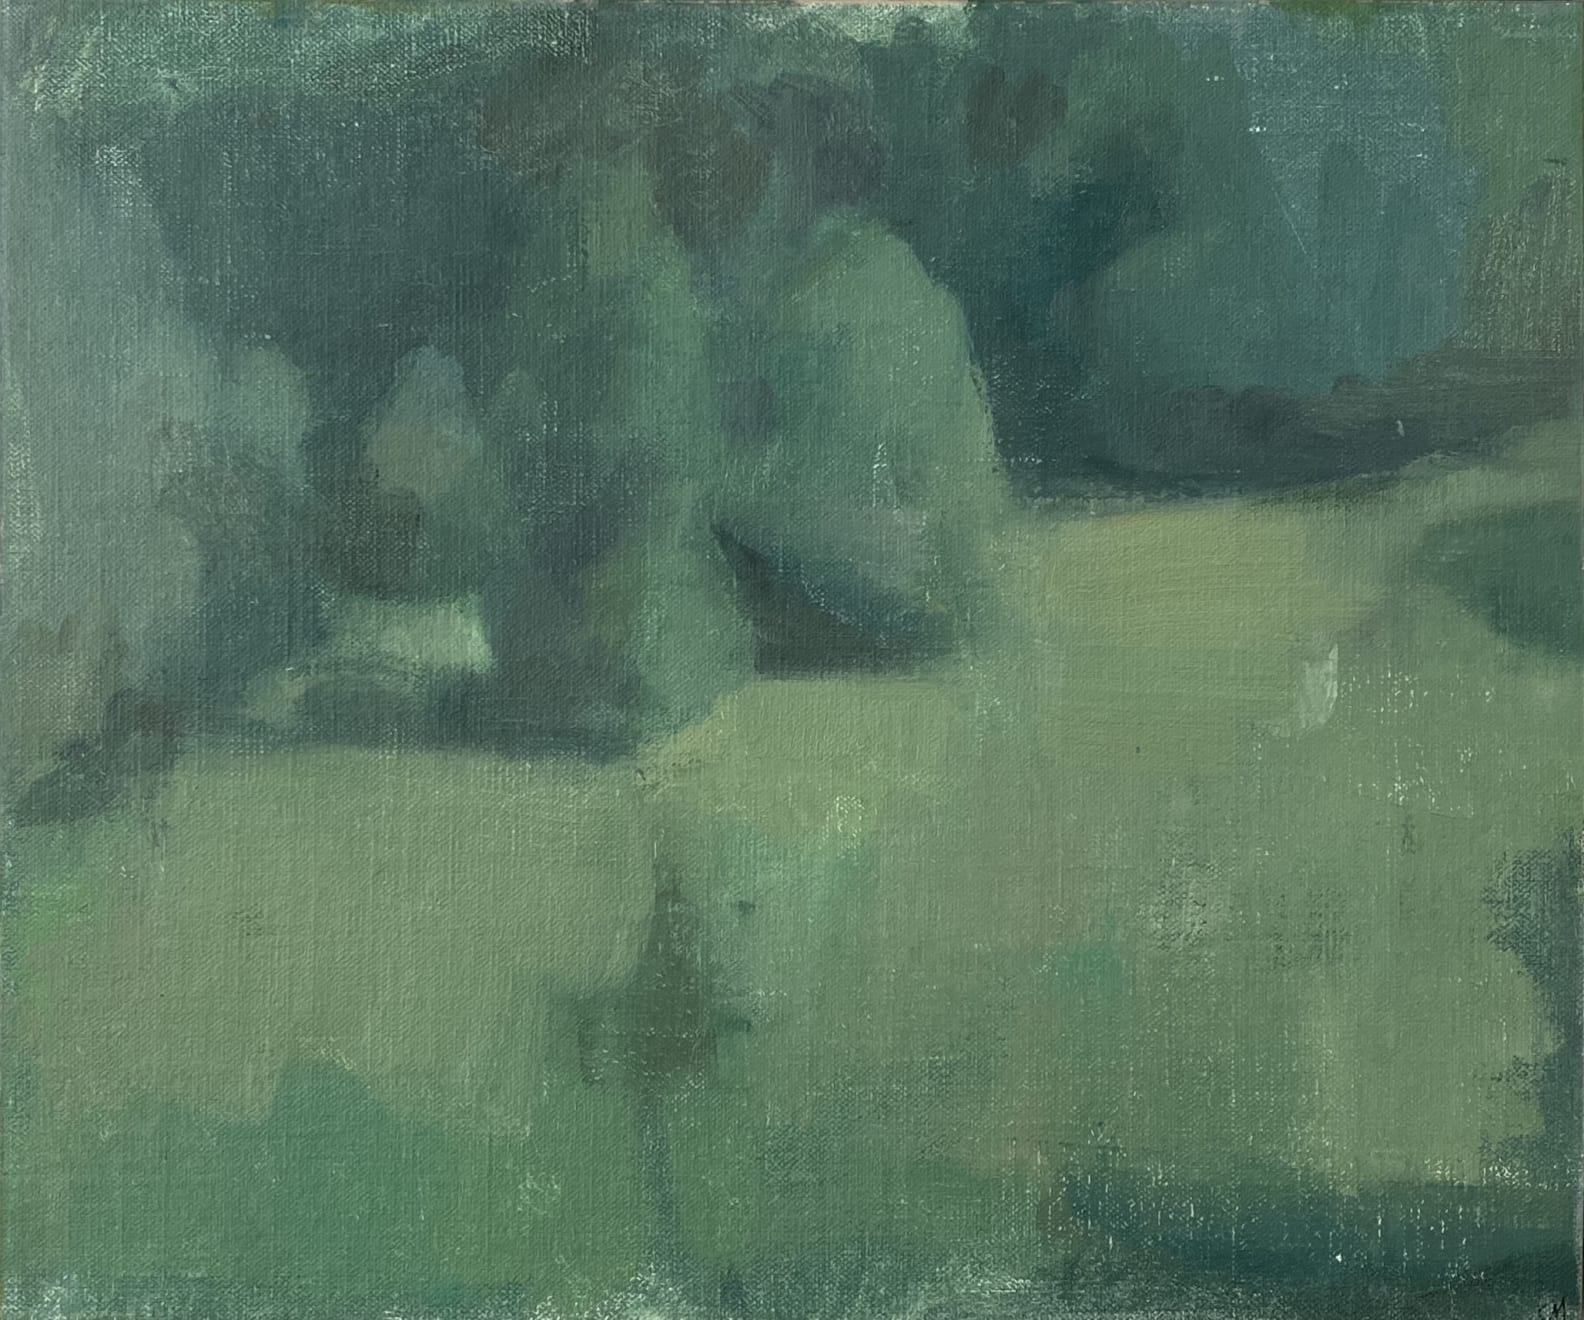 Conceal, Oil on linen on board, 28 x 33cm, £800, Clare Haward